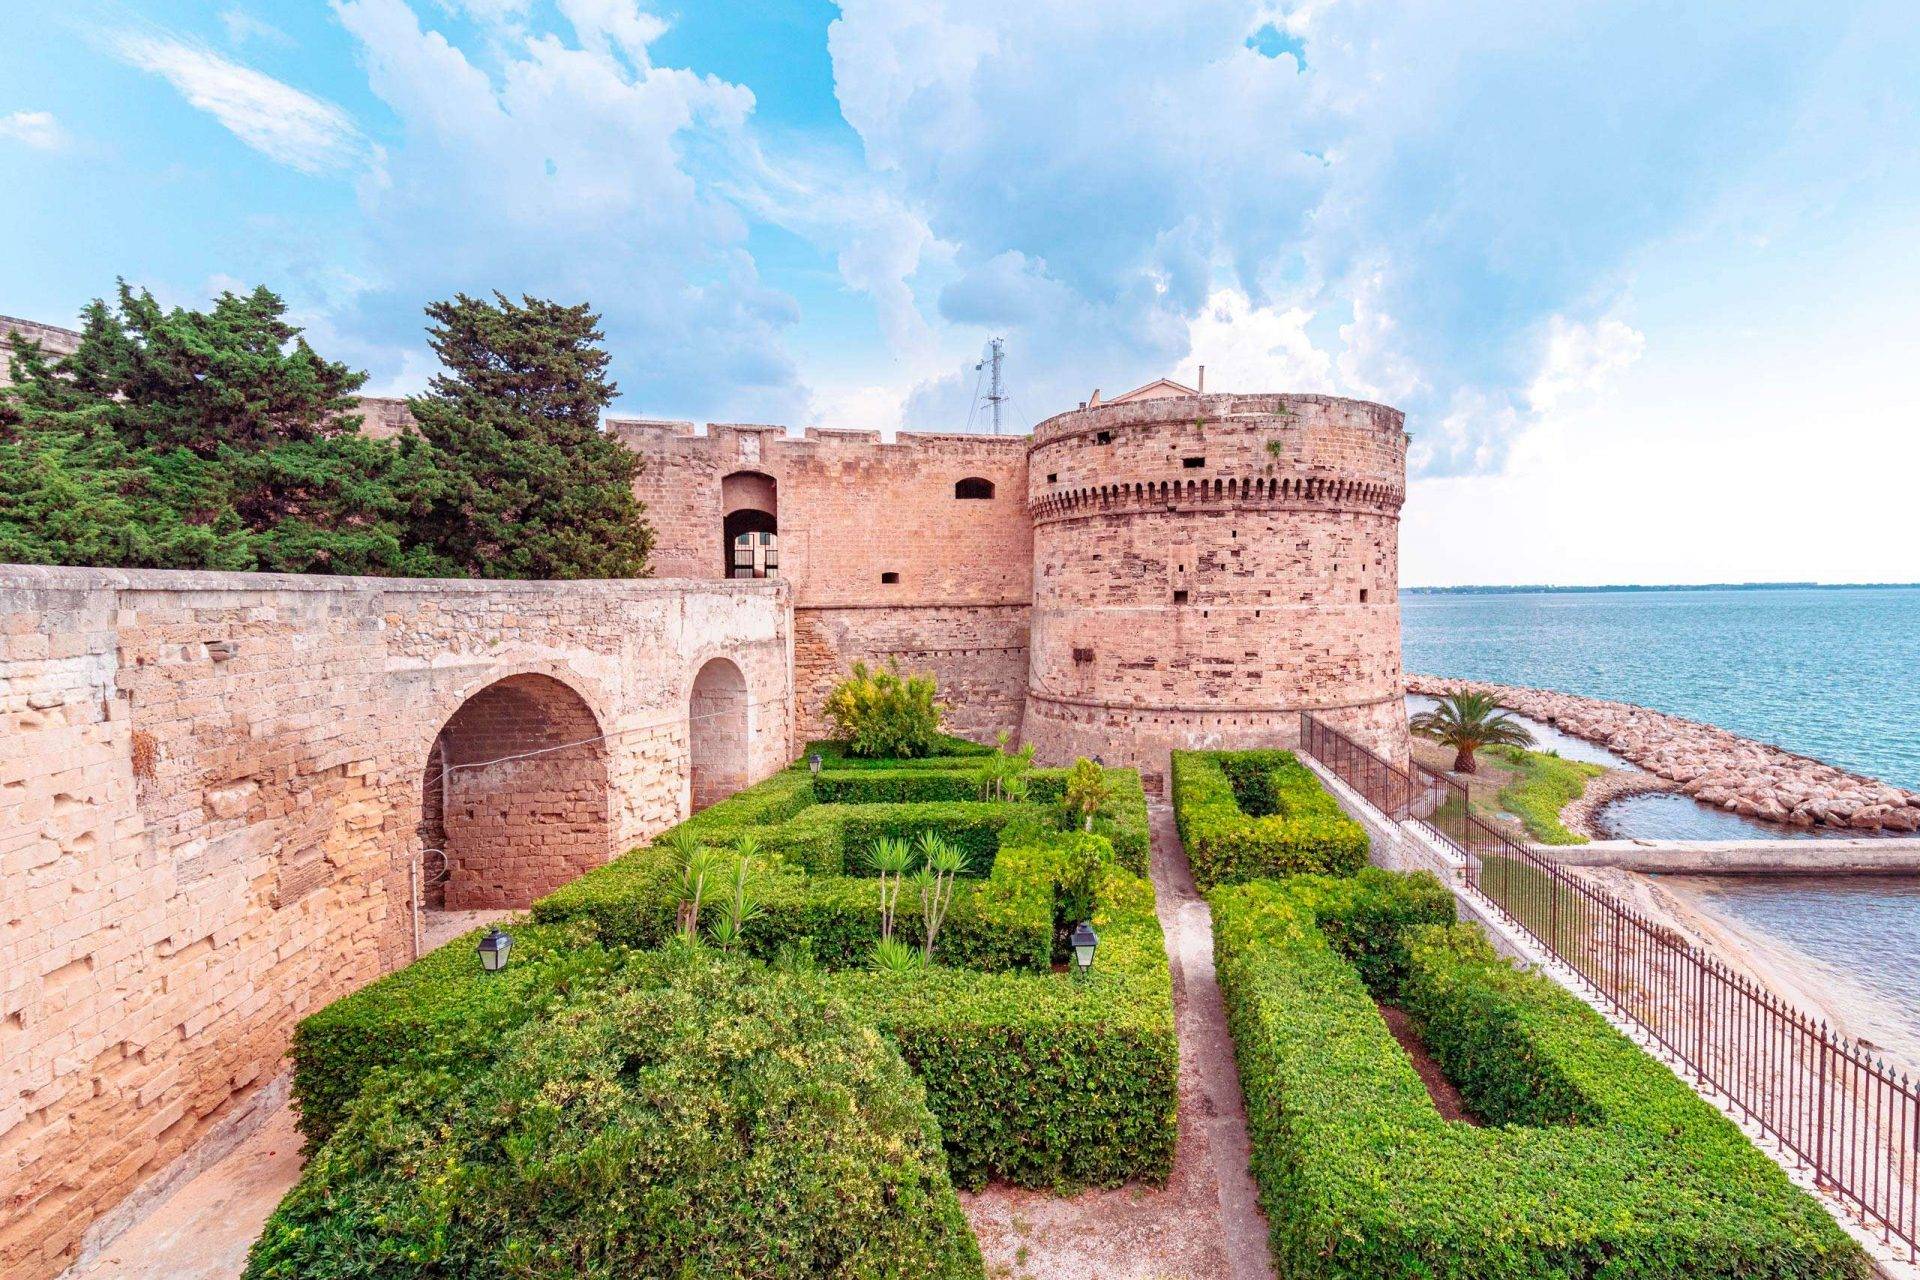 Castles in Puglia - Aragonese Castle of Taranto, the tower and the garden - Imperial Apulia